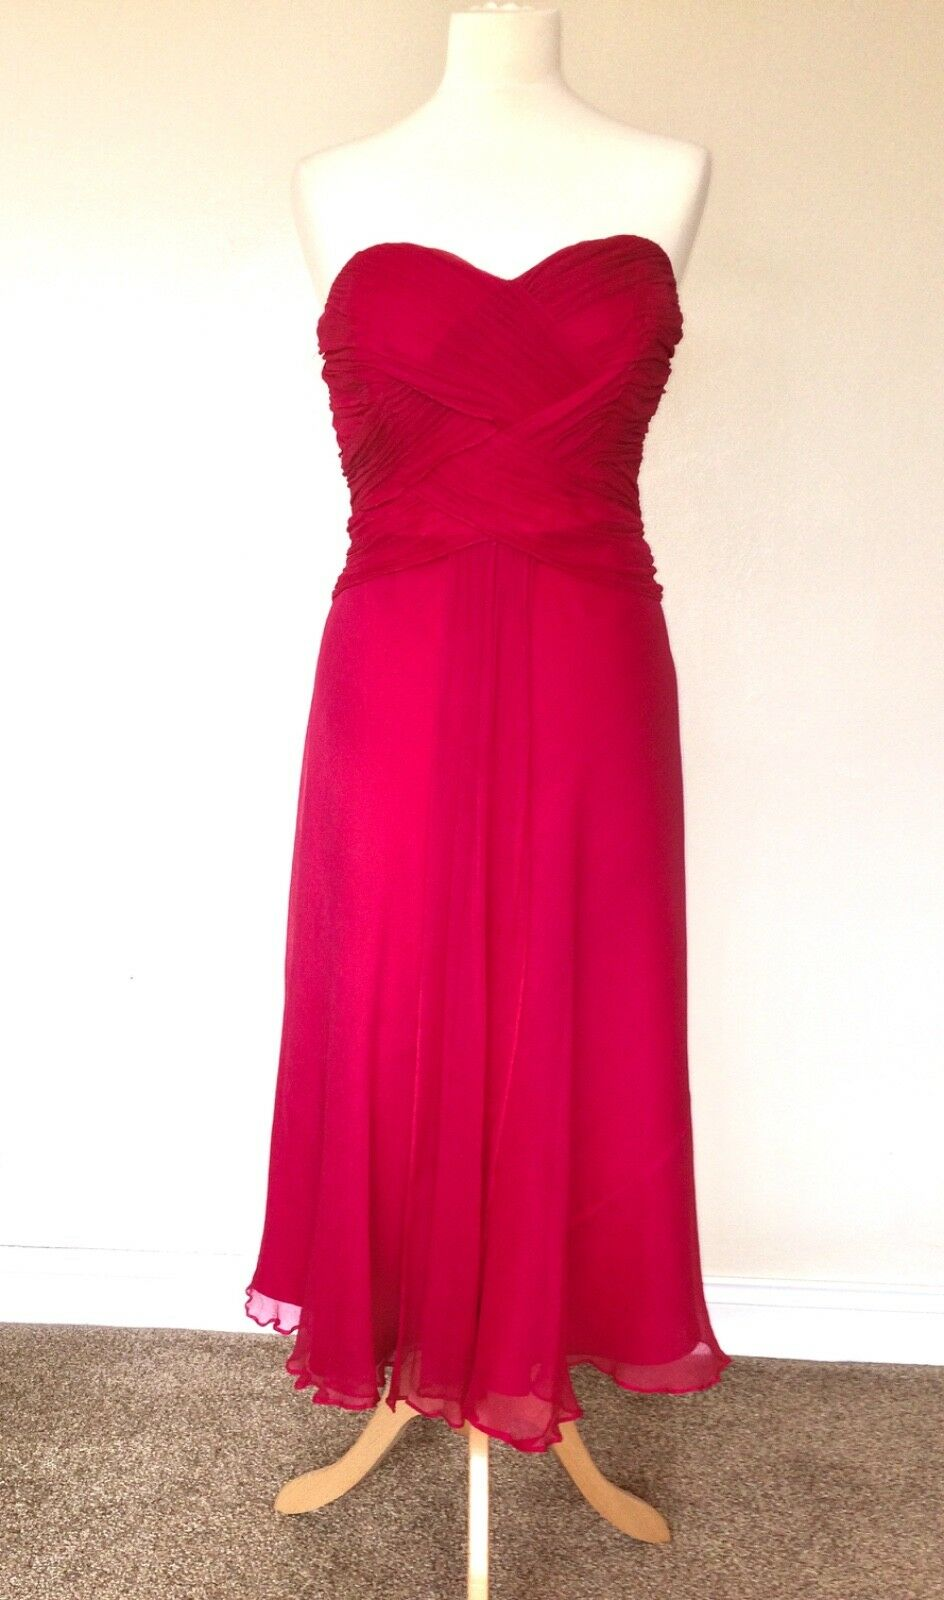 MONSOON SILK STRAPLESS DRESS 14 PINK RED PARTY OCCASION WEDDING PROM